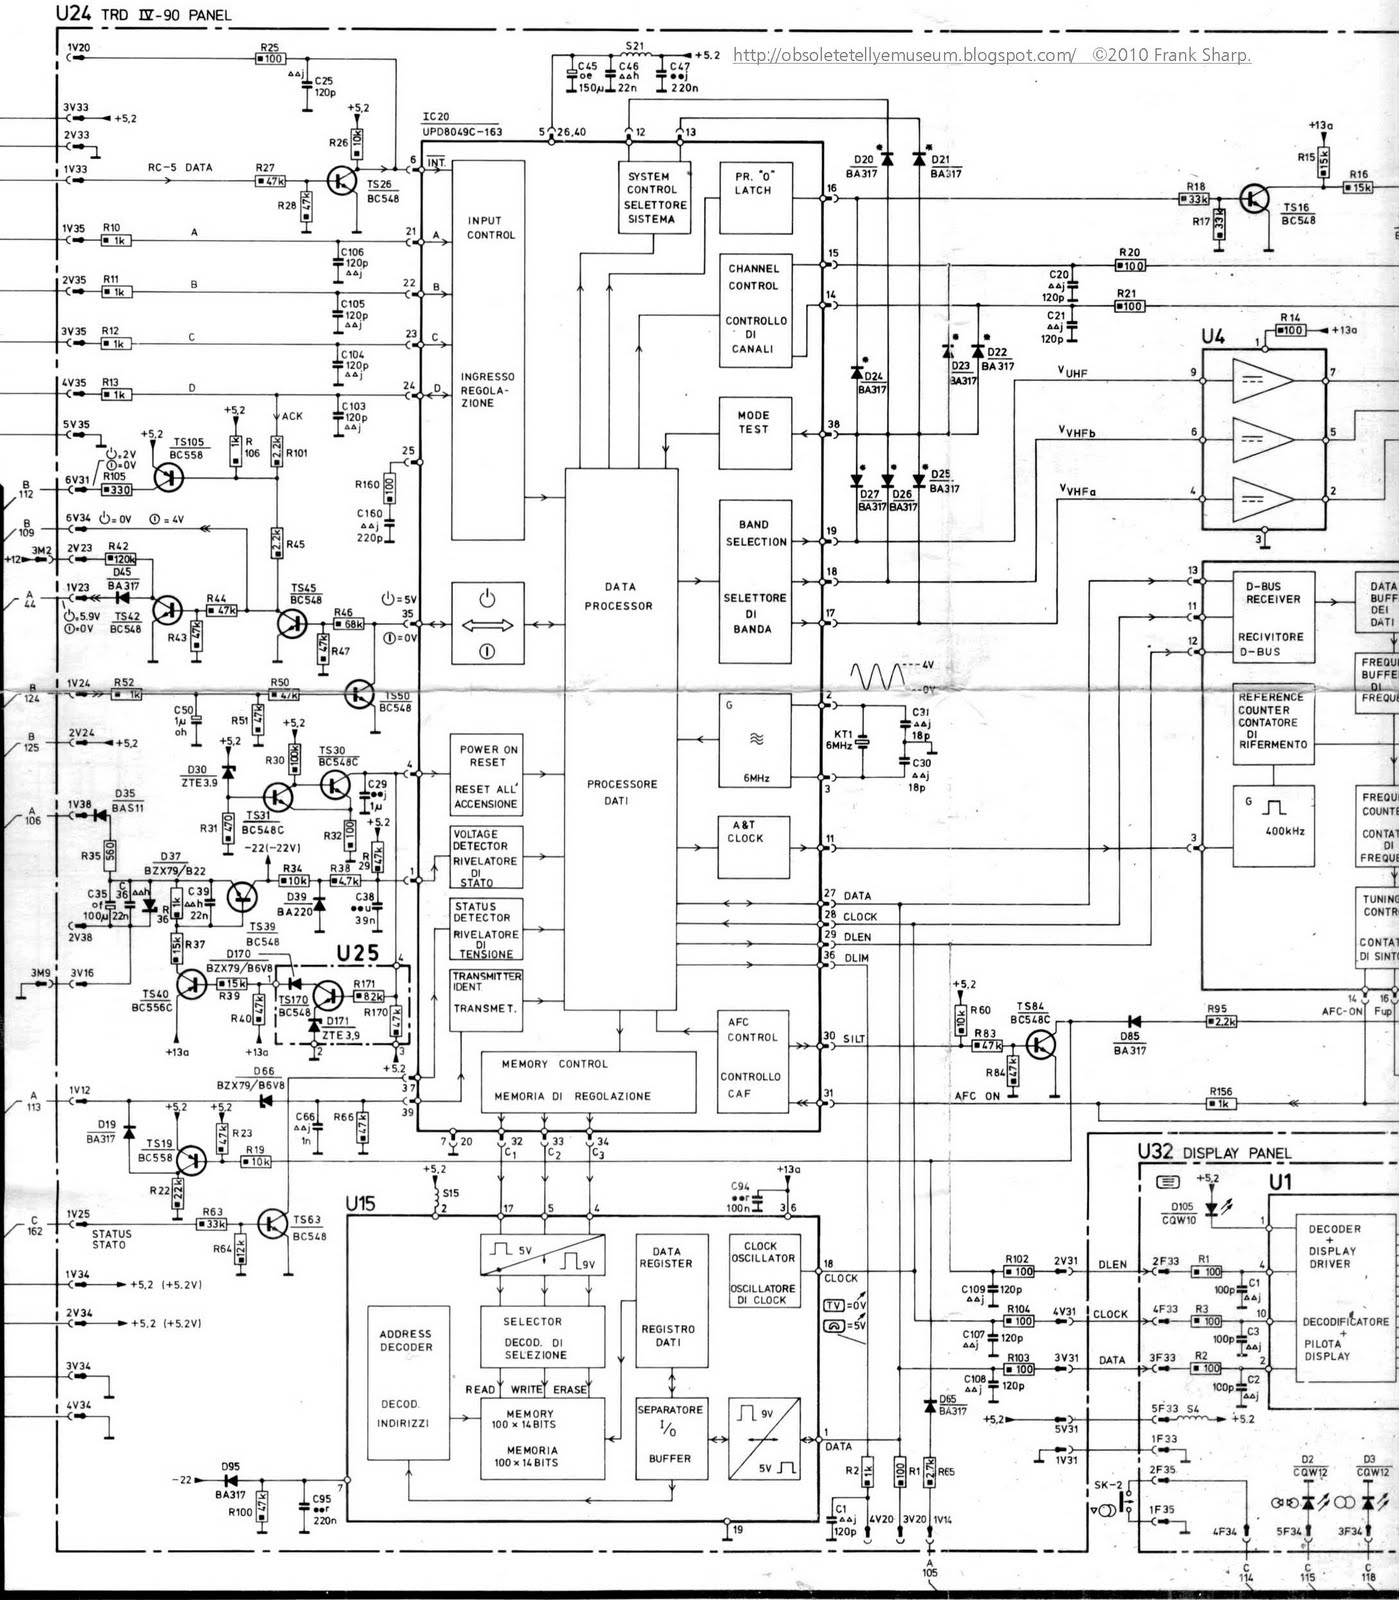 John Deere Lawn Tractor Ignition Switch Wiring Diagram Cross Section Of Muffler 430 Diagram, John, Free Engine Image For User Manual Download